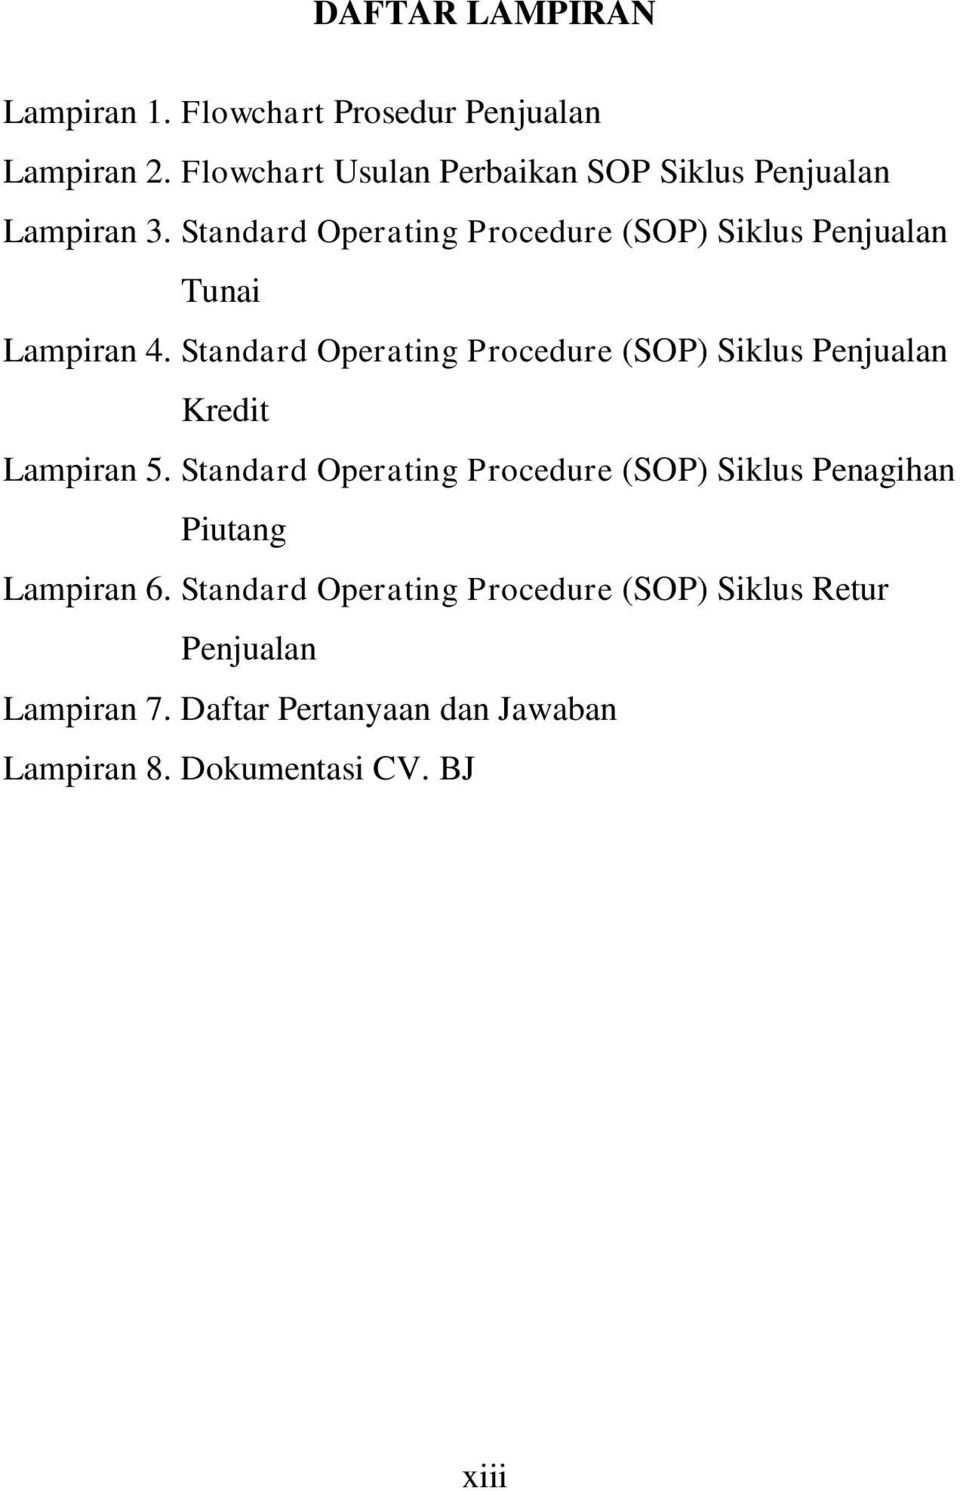 Standard Operating Procedure (SOP) Siklus Penjualan Tunai Lampiran 4.